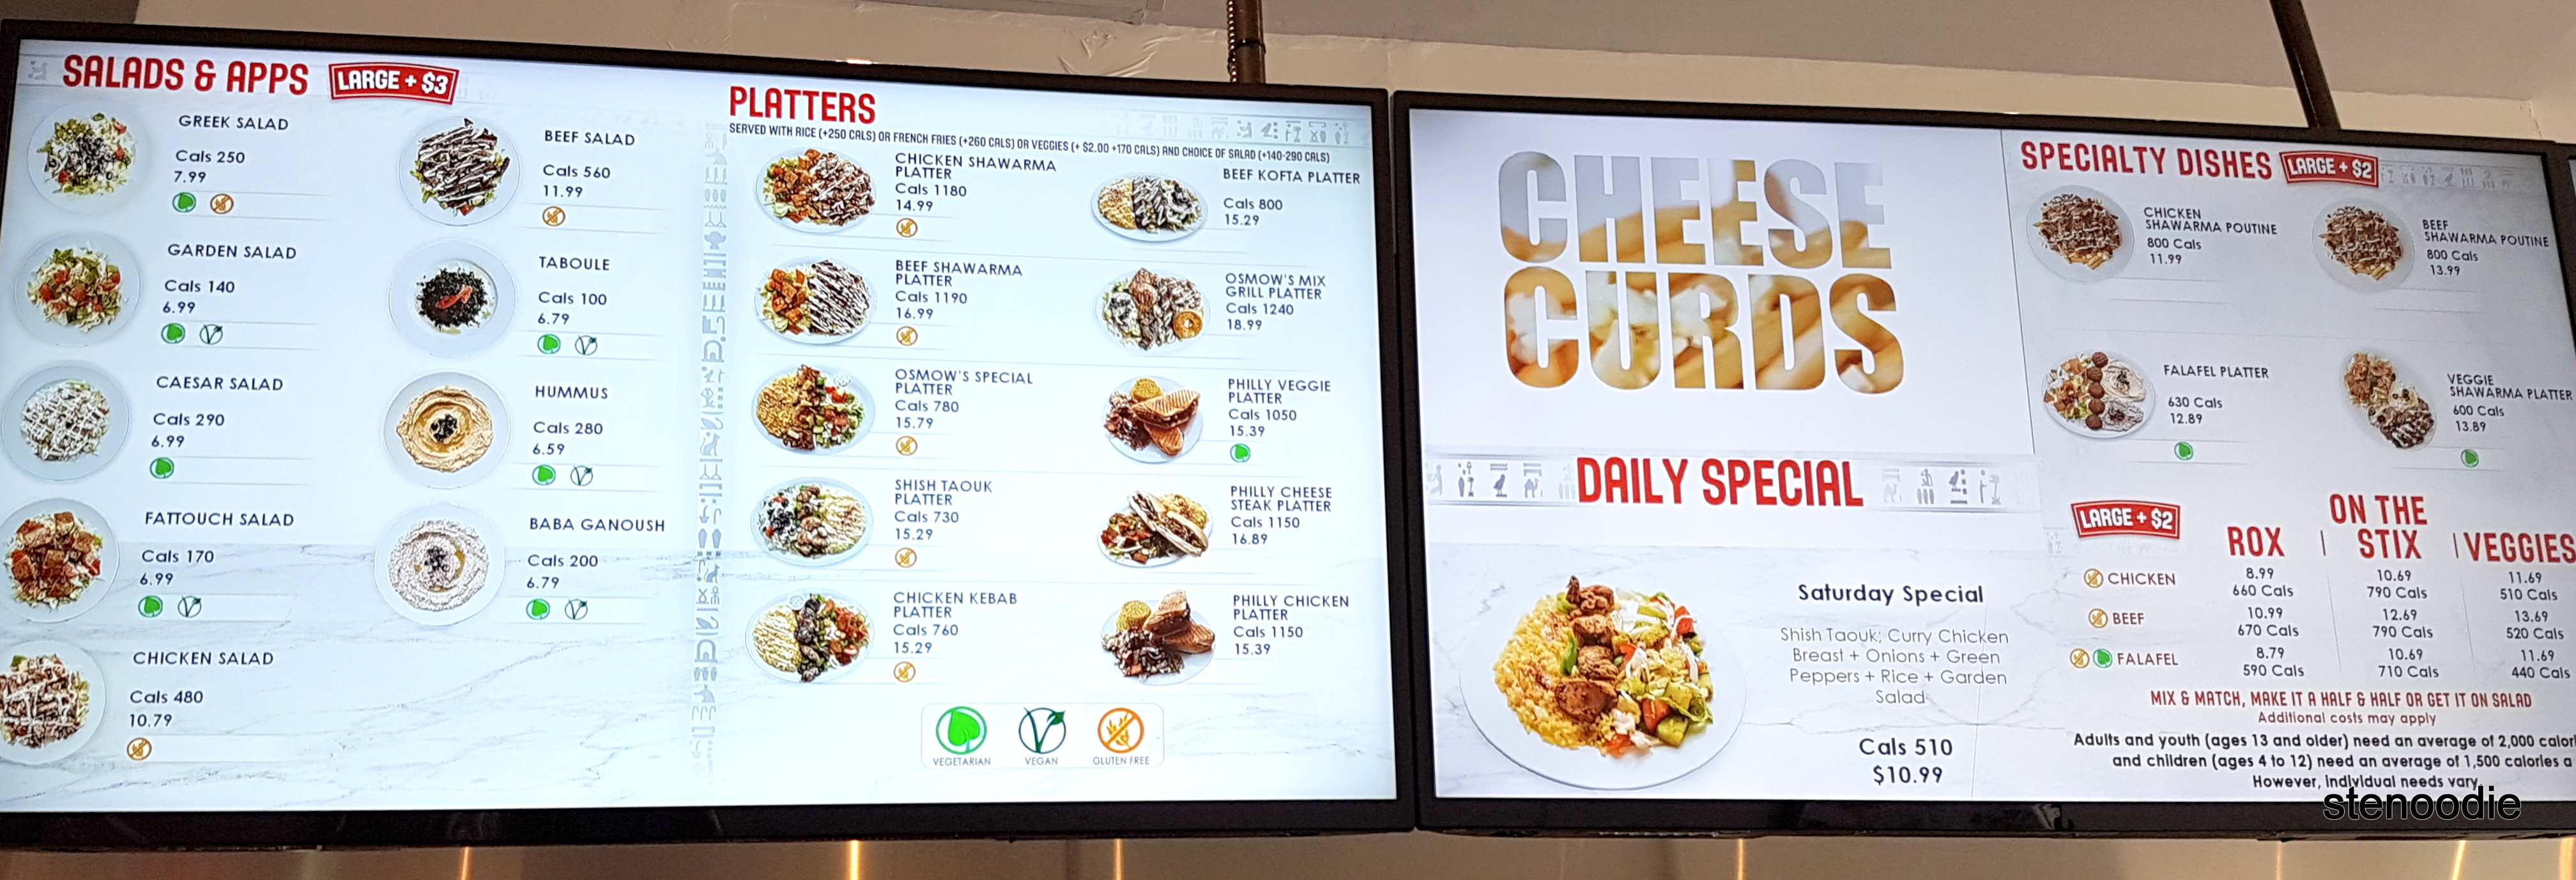 Osmow's Markham menu and prices